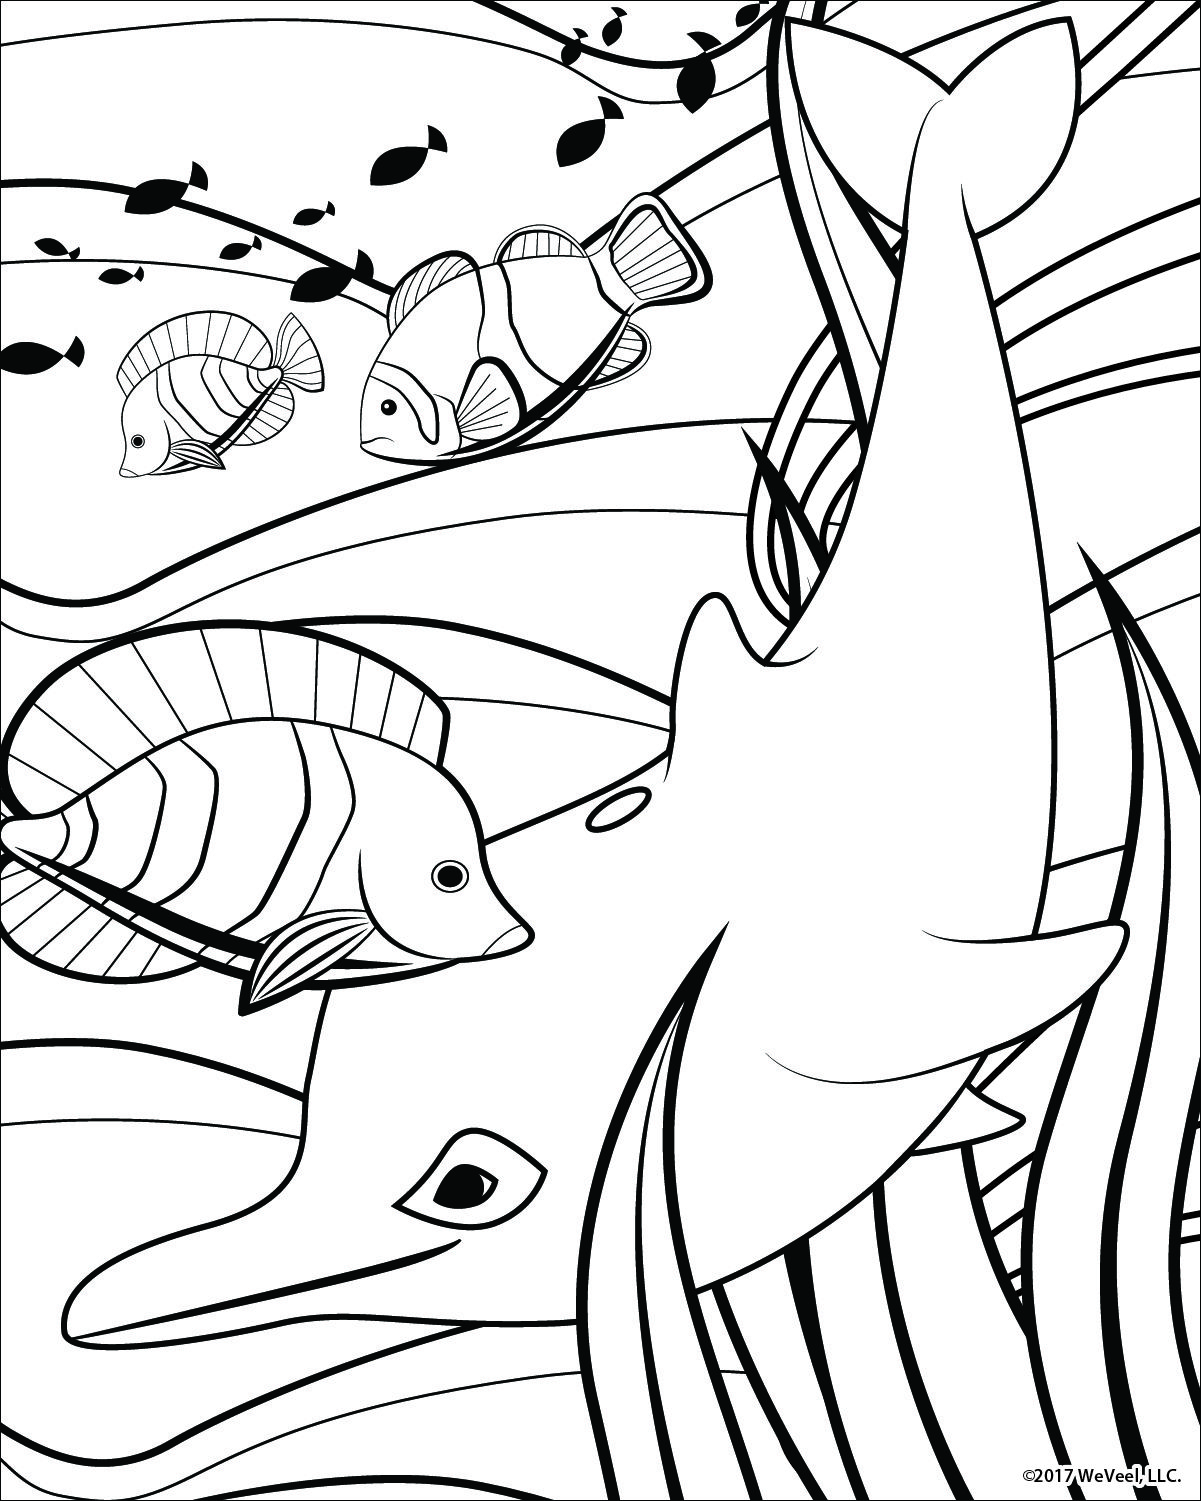 Coloring Pages Sea Life Coloring Pages Candy Coloring Pages Free Kids Coloring Pages